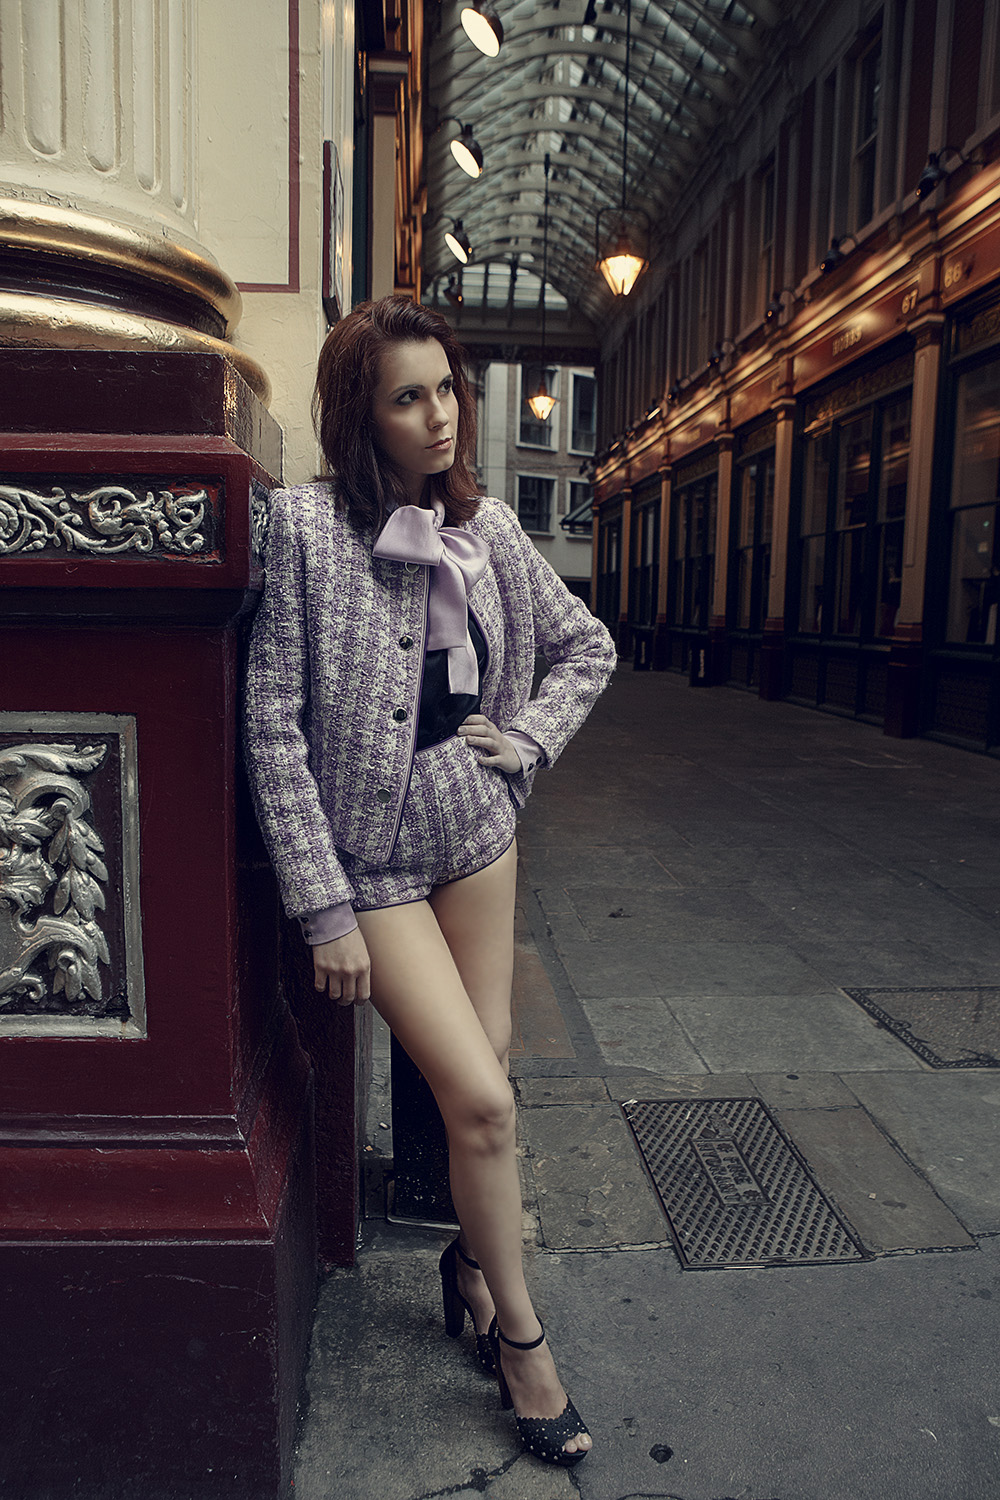 Ana Glowyth Leadenhall Market London Photo Shoot July 2015 Professional Photo (4).jpg